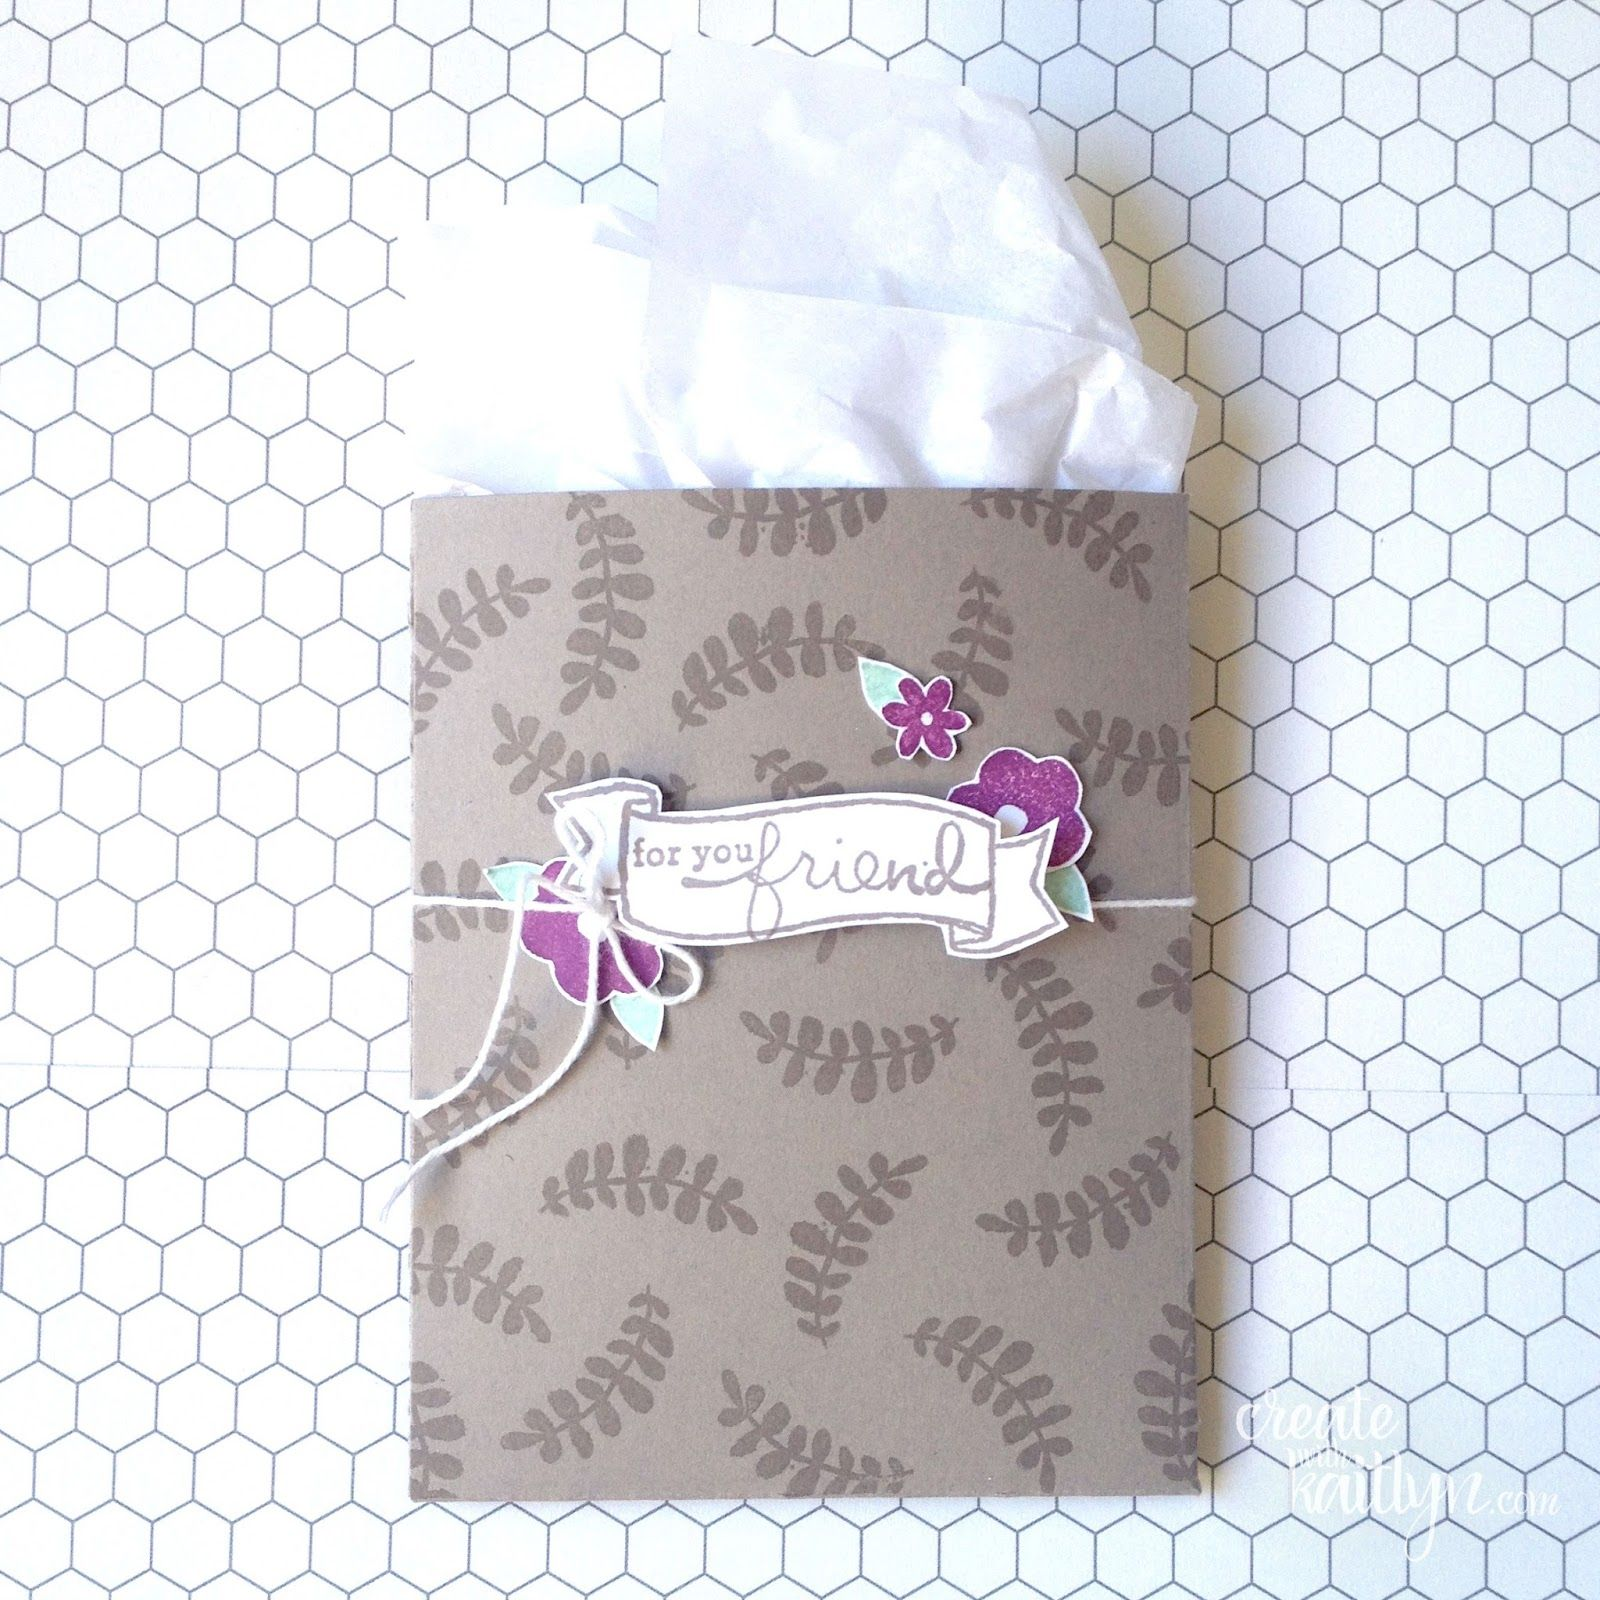 For you friend monday montage gift card holder paper